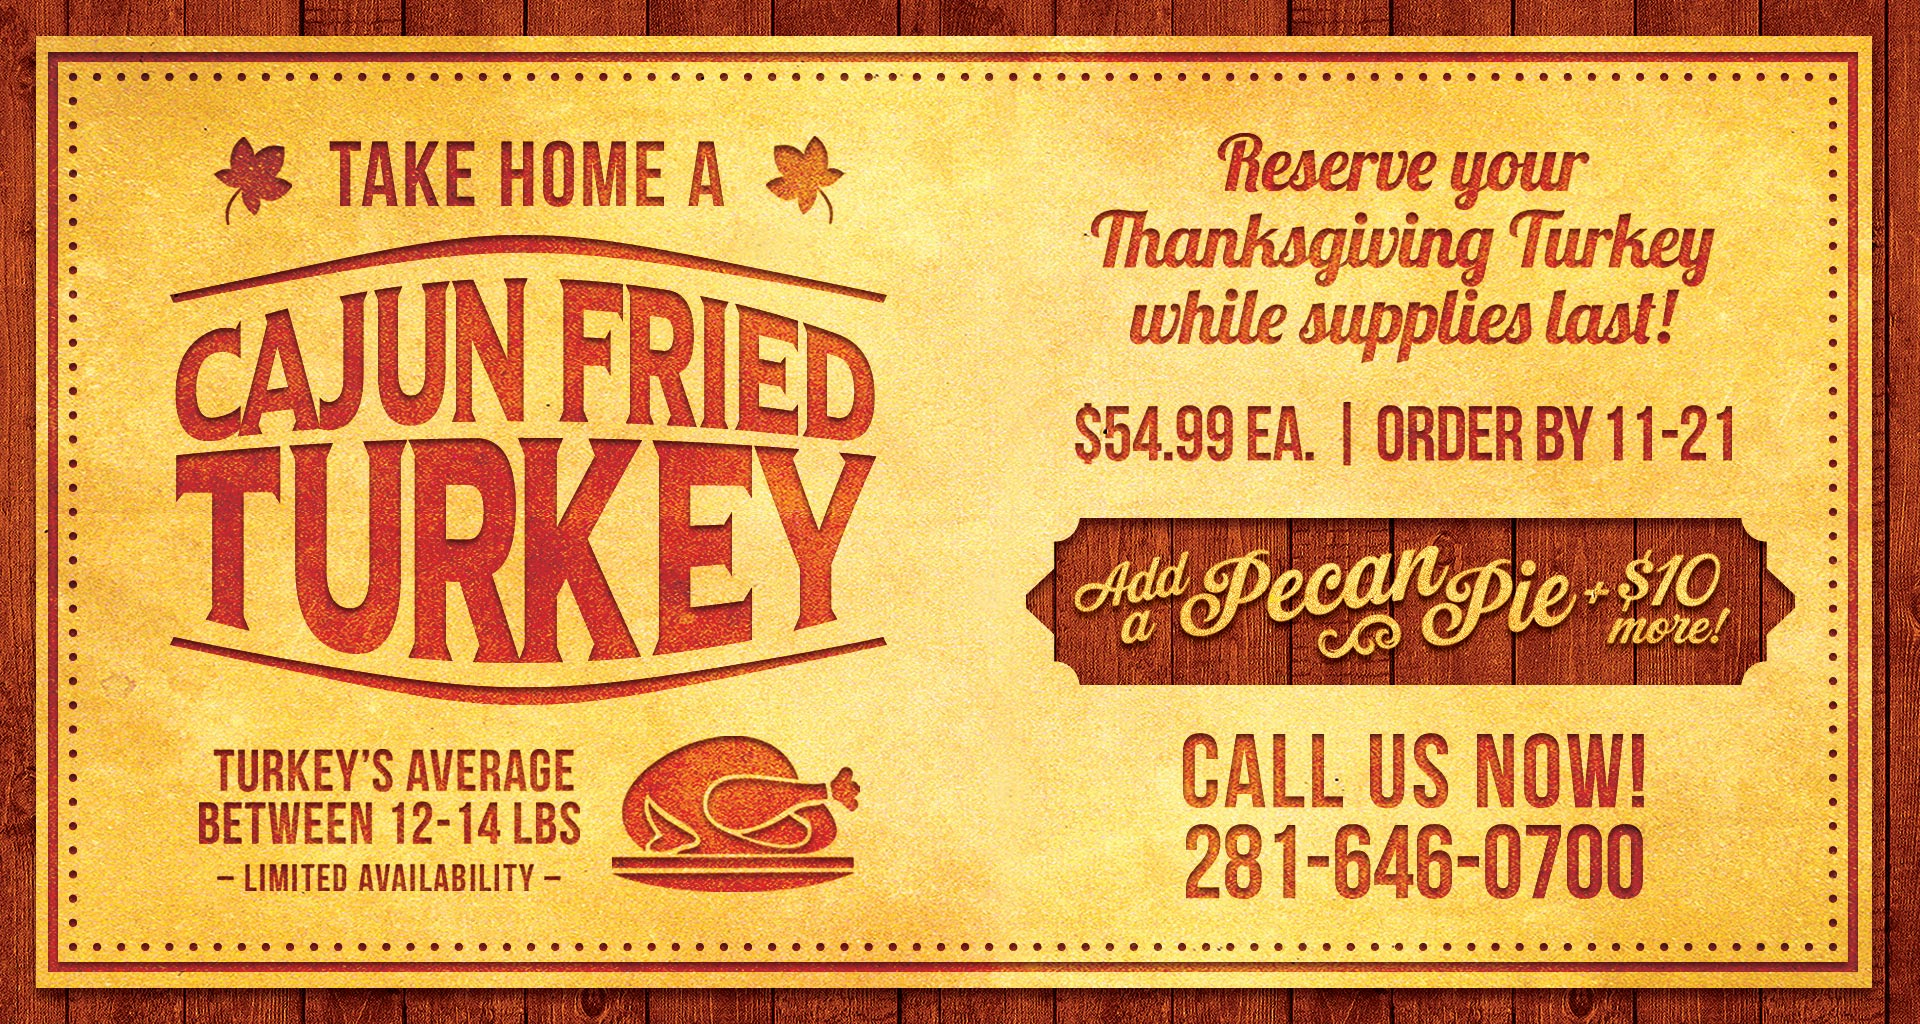 Take Home a Cajun Fried Turkey and Pecan Pie - Orleans Seafood Kitchen